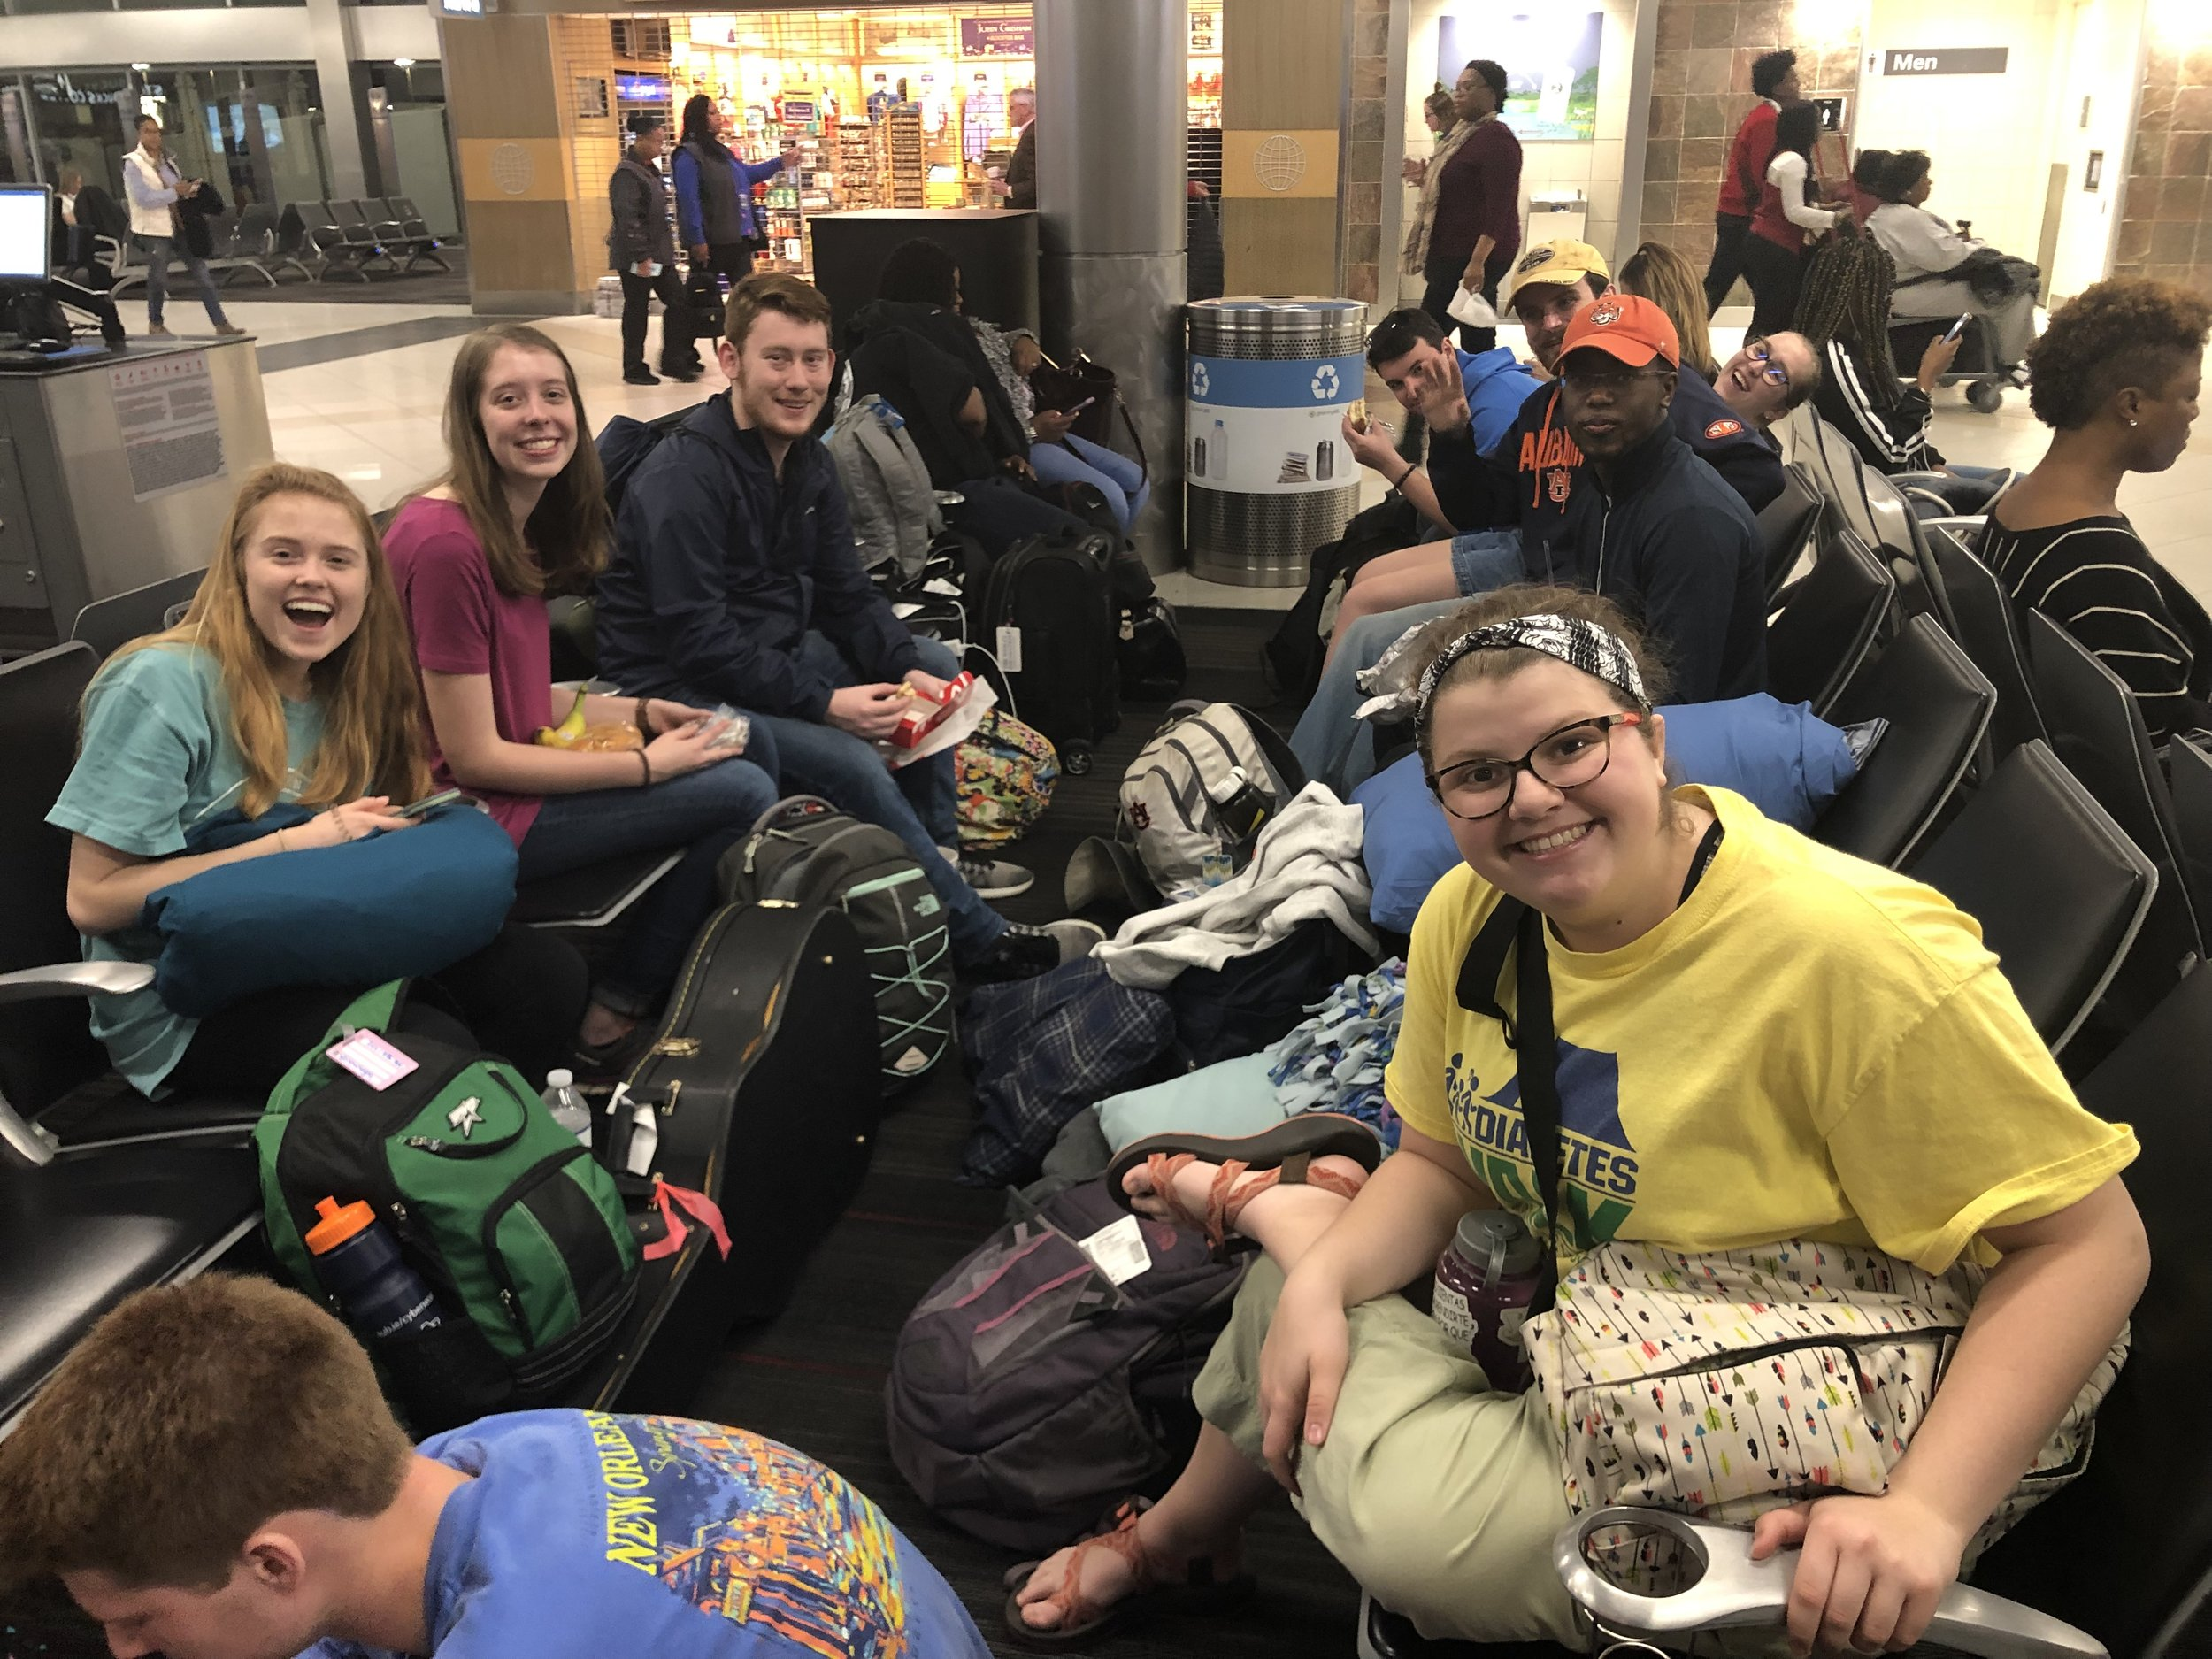 Just hangin' at the ATL airport! Pictured from right to left: Bekah Wommack, Sarah Jones, Ben Gourley, Josh Ellis, Becca Mercer, JT Mercer, AJ Stanley, and Taylor Vaughan